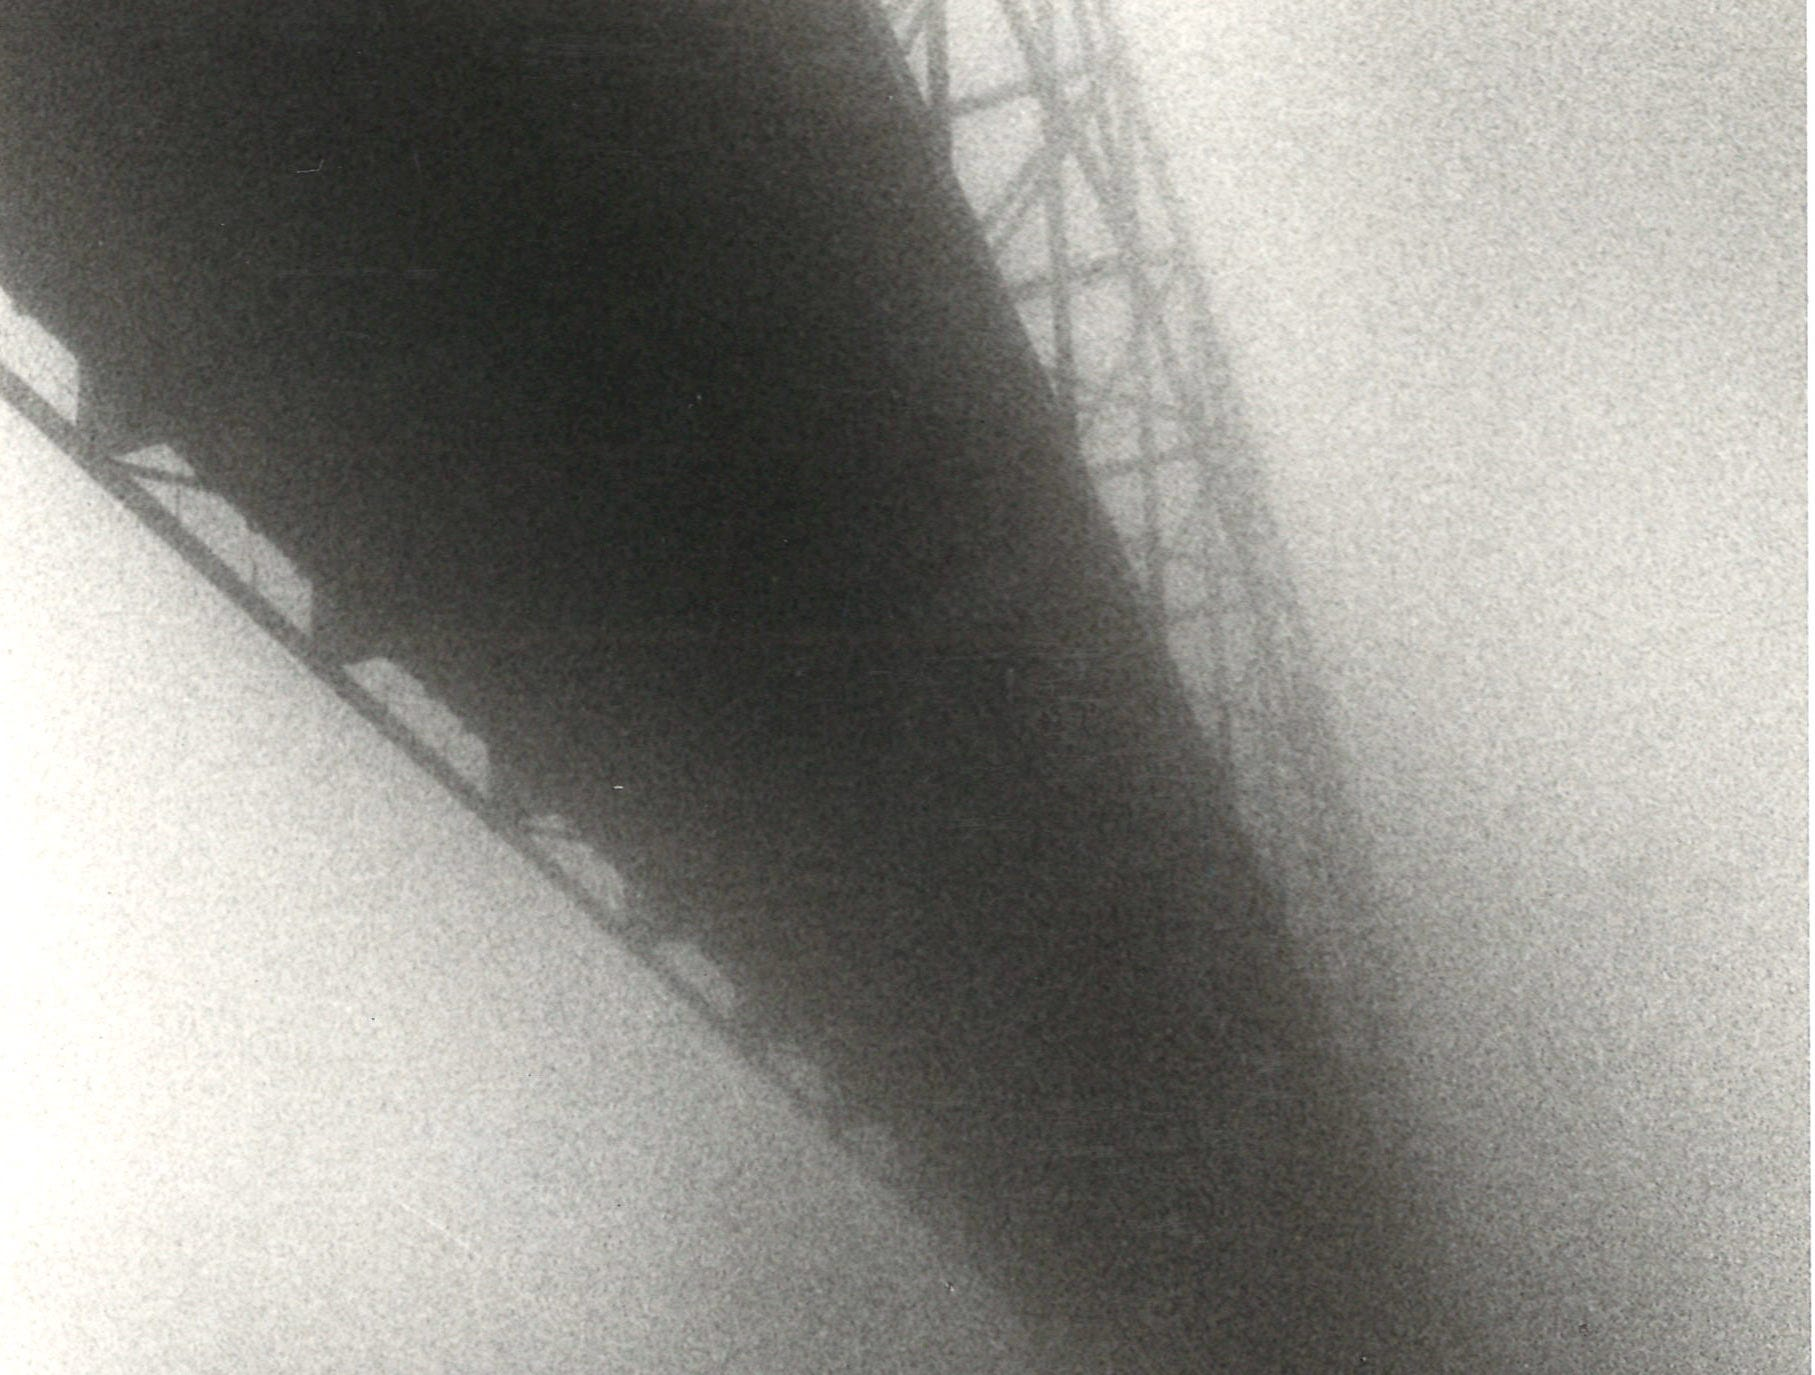 The Harbor Bridge rises up from the fog in Corpus Christi on Jan. 17, 1979.